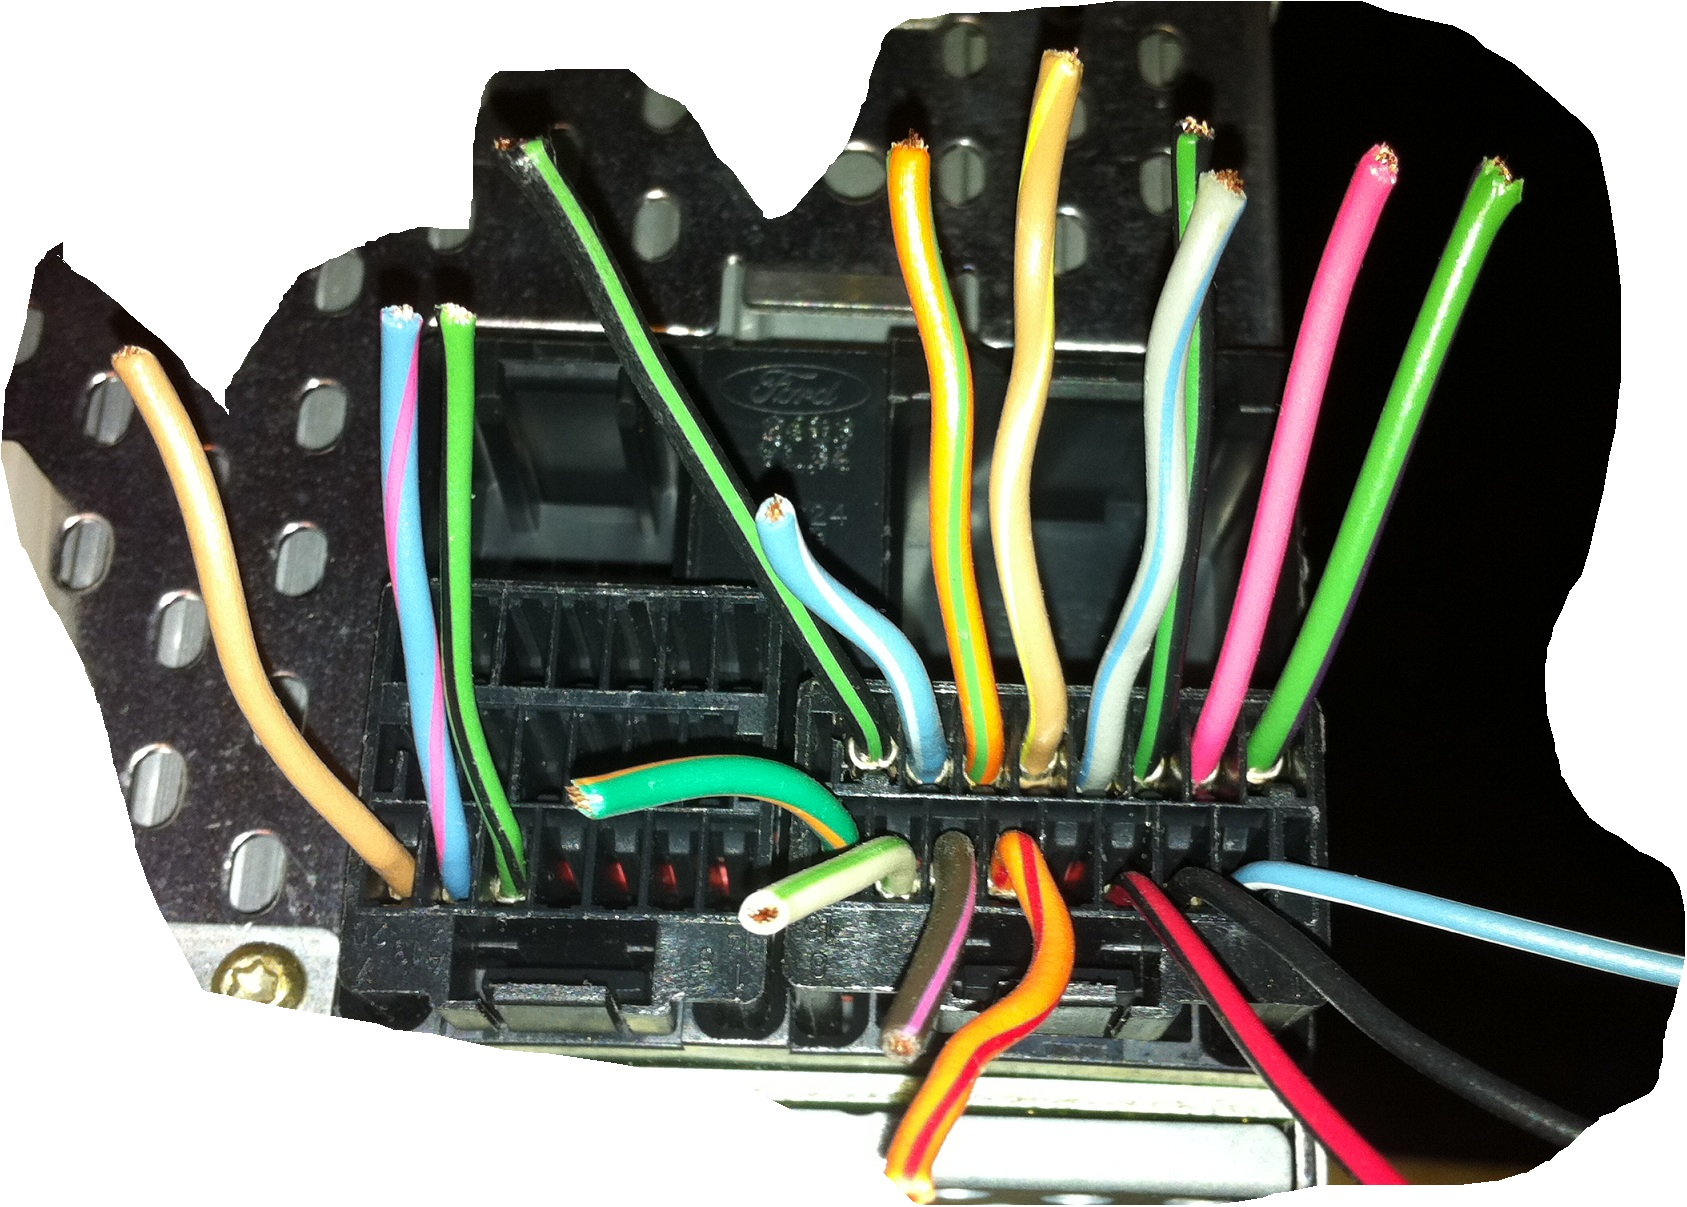 2011 06 24_023822_6 23 11_130 where can i find 2003 windstar radio color wire diagram most i've 2002 ford windstar radio wiring diagram at gsmportal.co